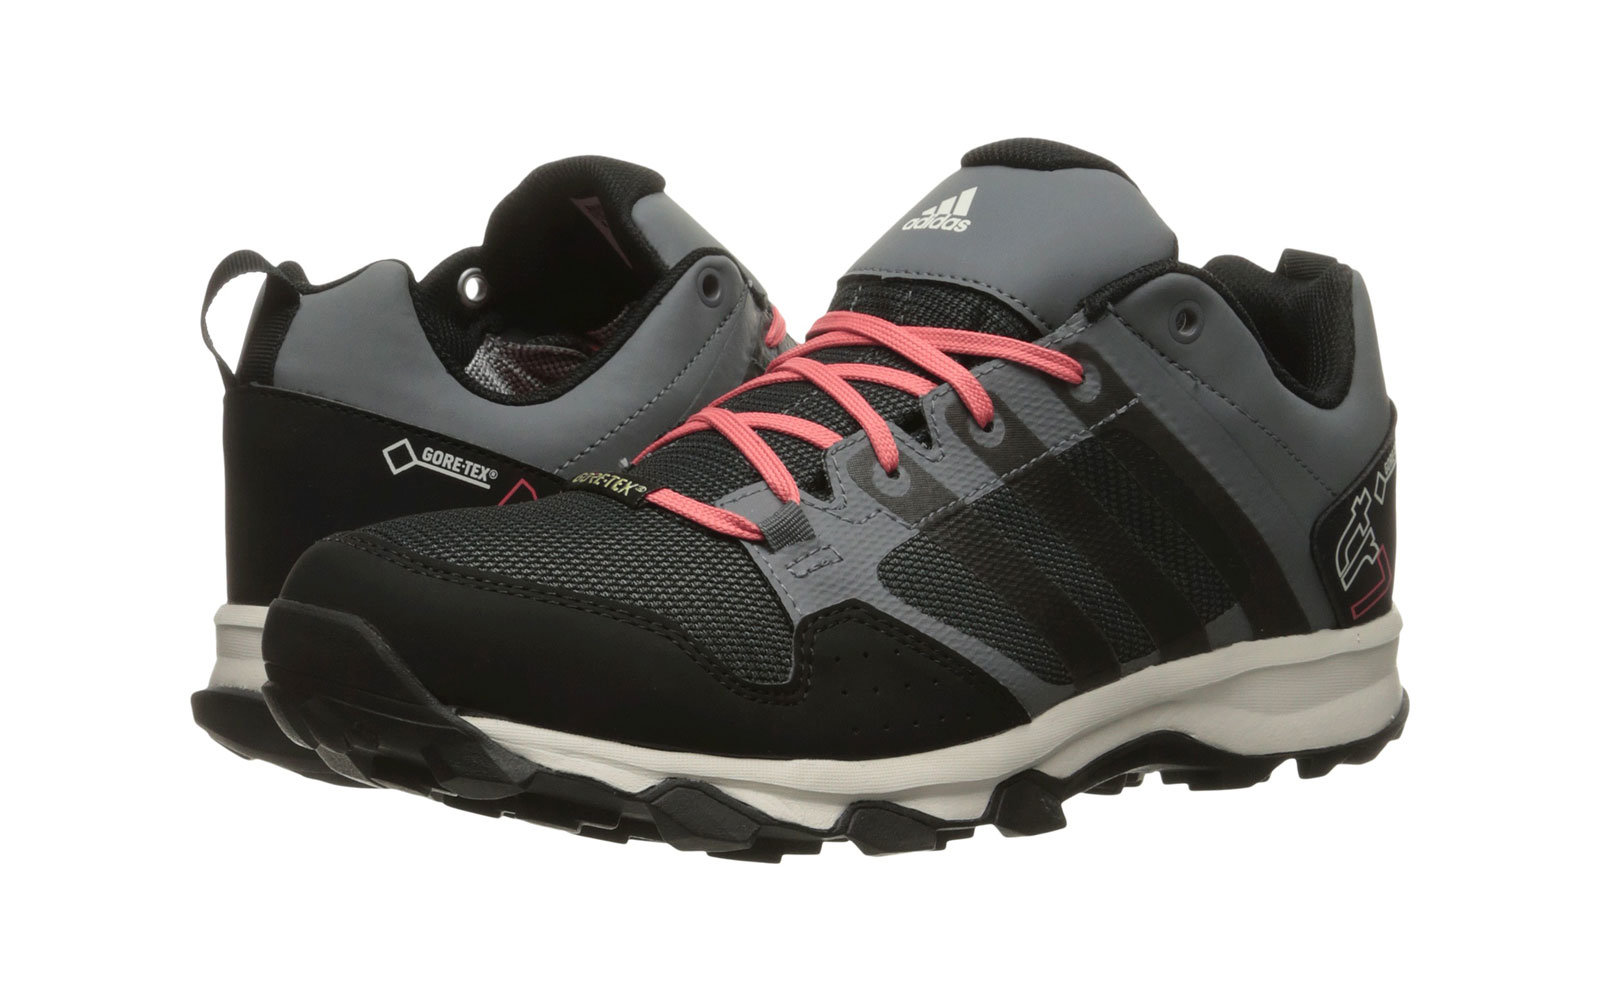 comfy walking shoes Adidas